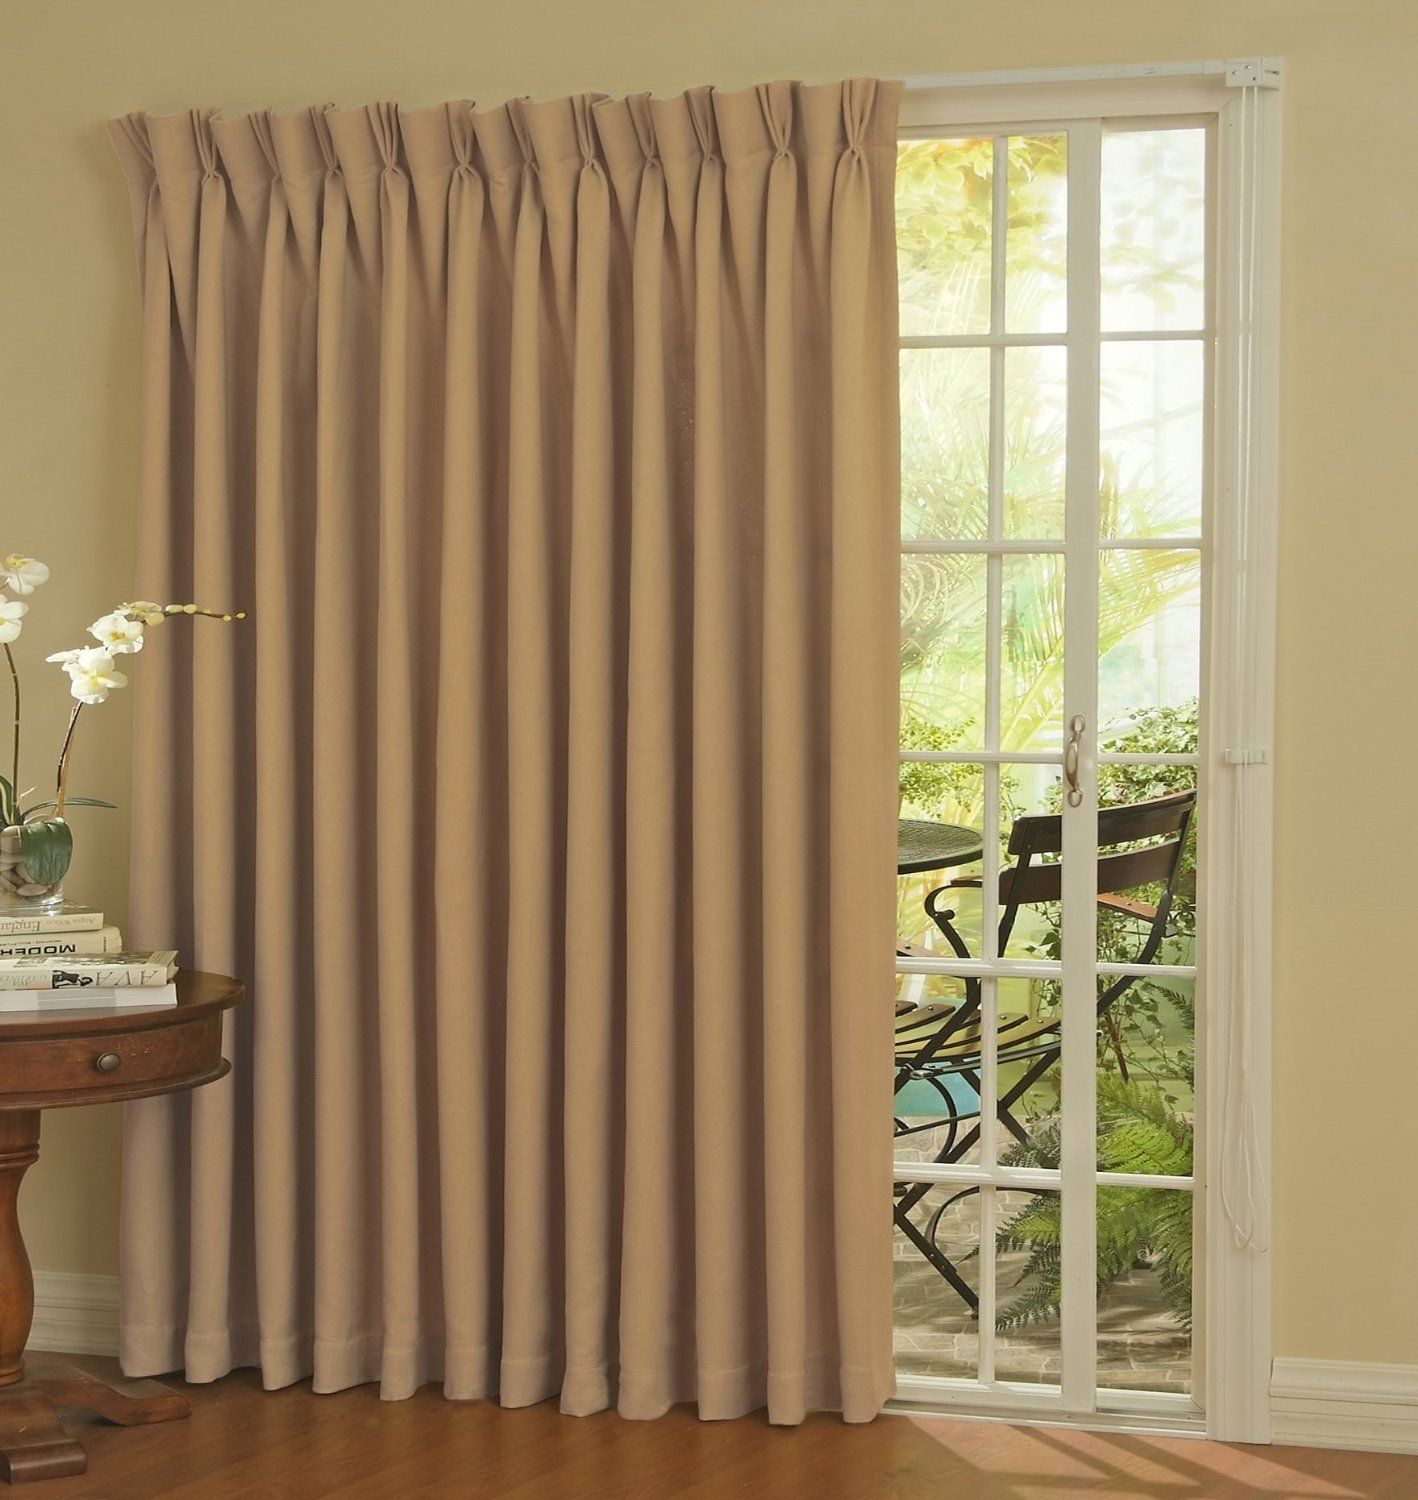 Insulated curtains for sliding glass doors - Eclipse Thermal Blackout Patio Door Curtain Panel Privacy Style And Energy Savings The Ellery Holdings Eclipse Thermal Blackout Patio Door Curtain